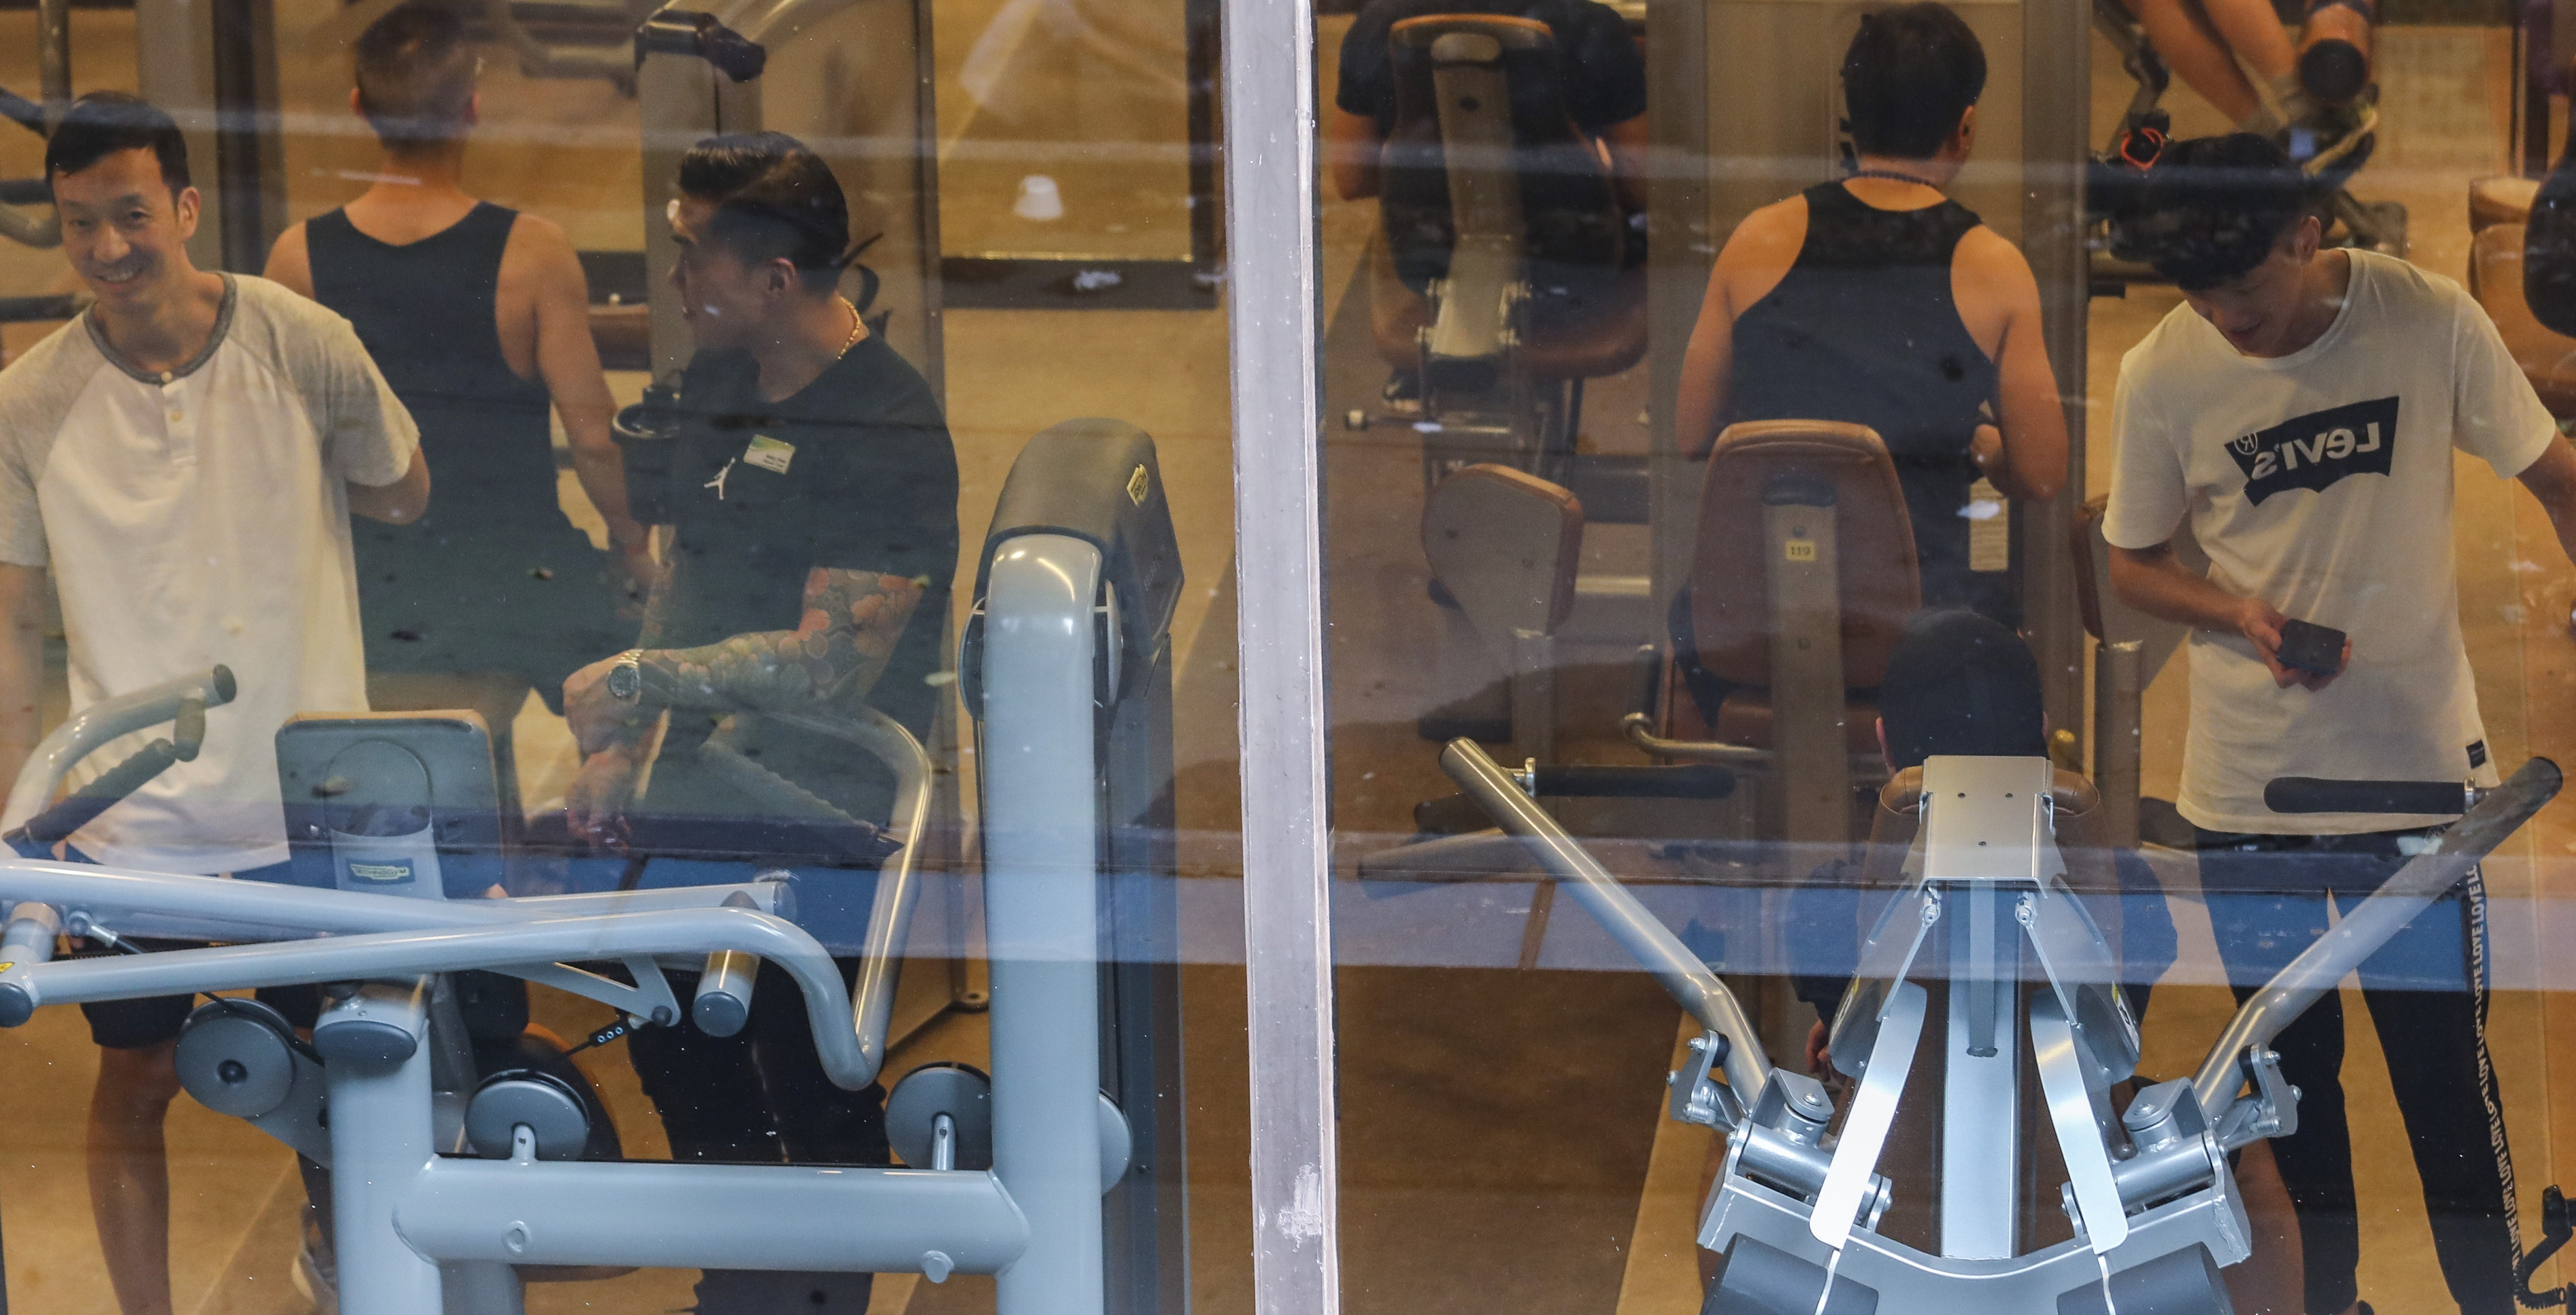 Gyms and beauty salons could be made to refund unhappy